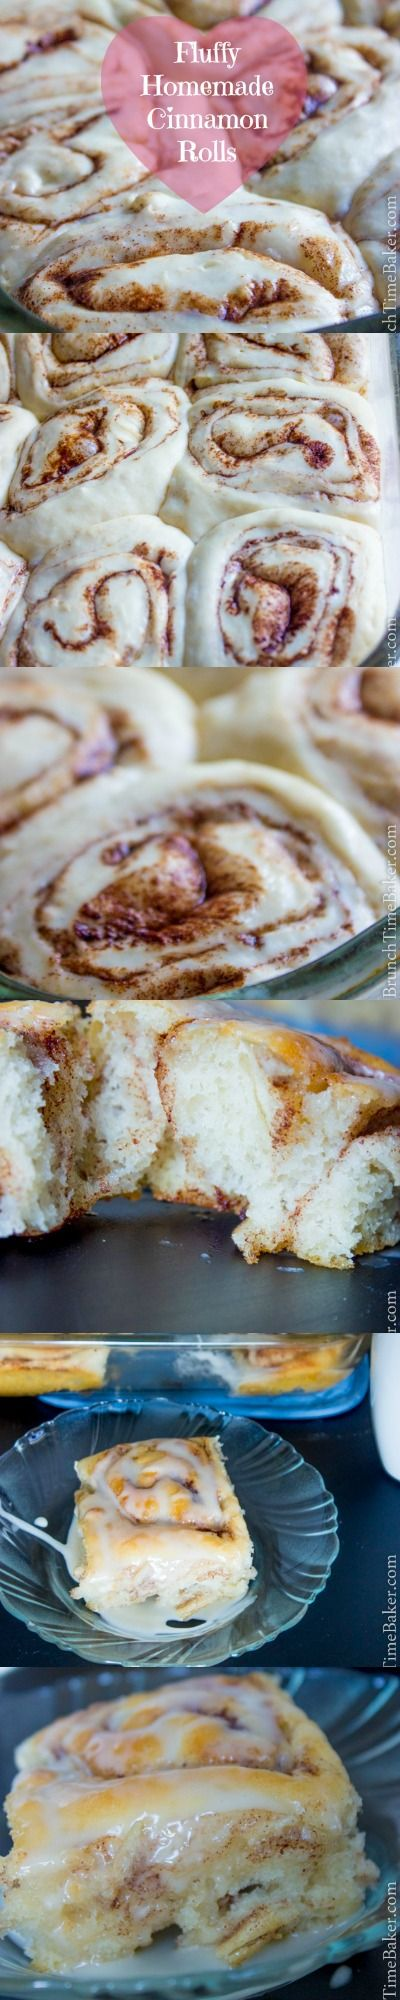 Your going to love this Super fluffy and moist cinnamon roll recipe!